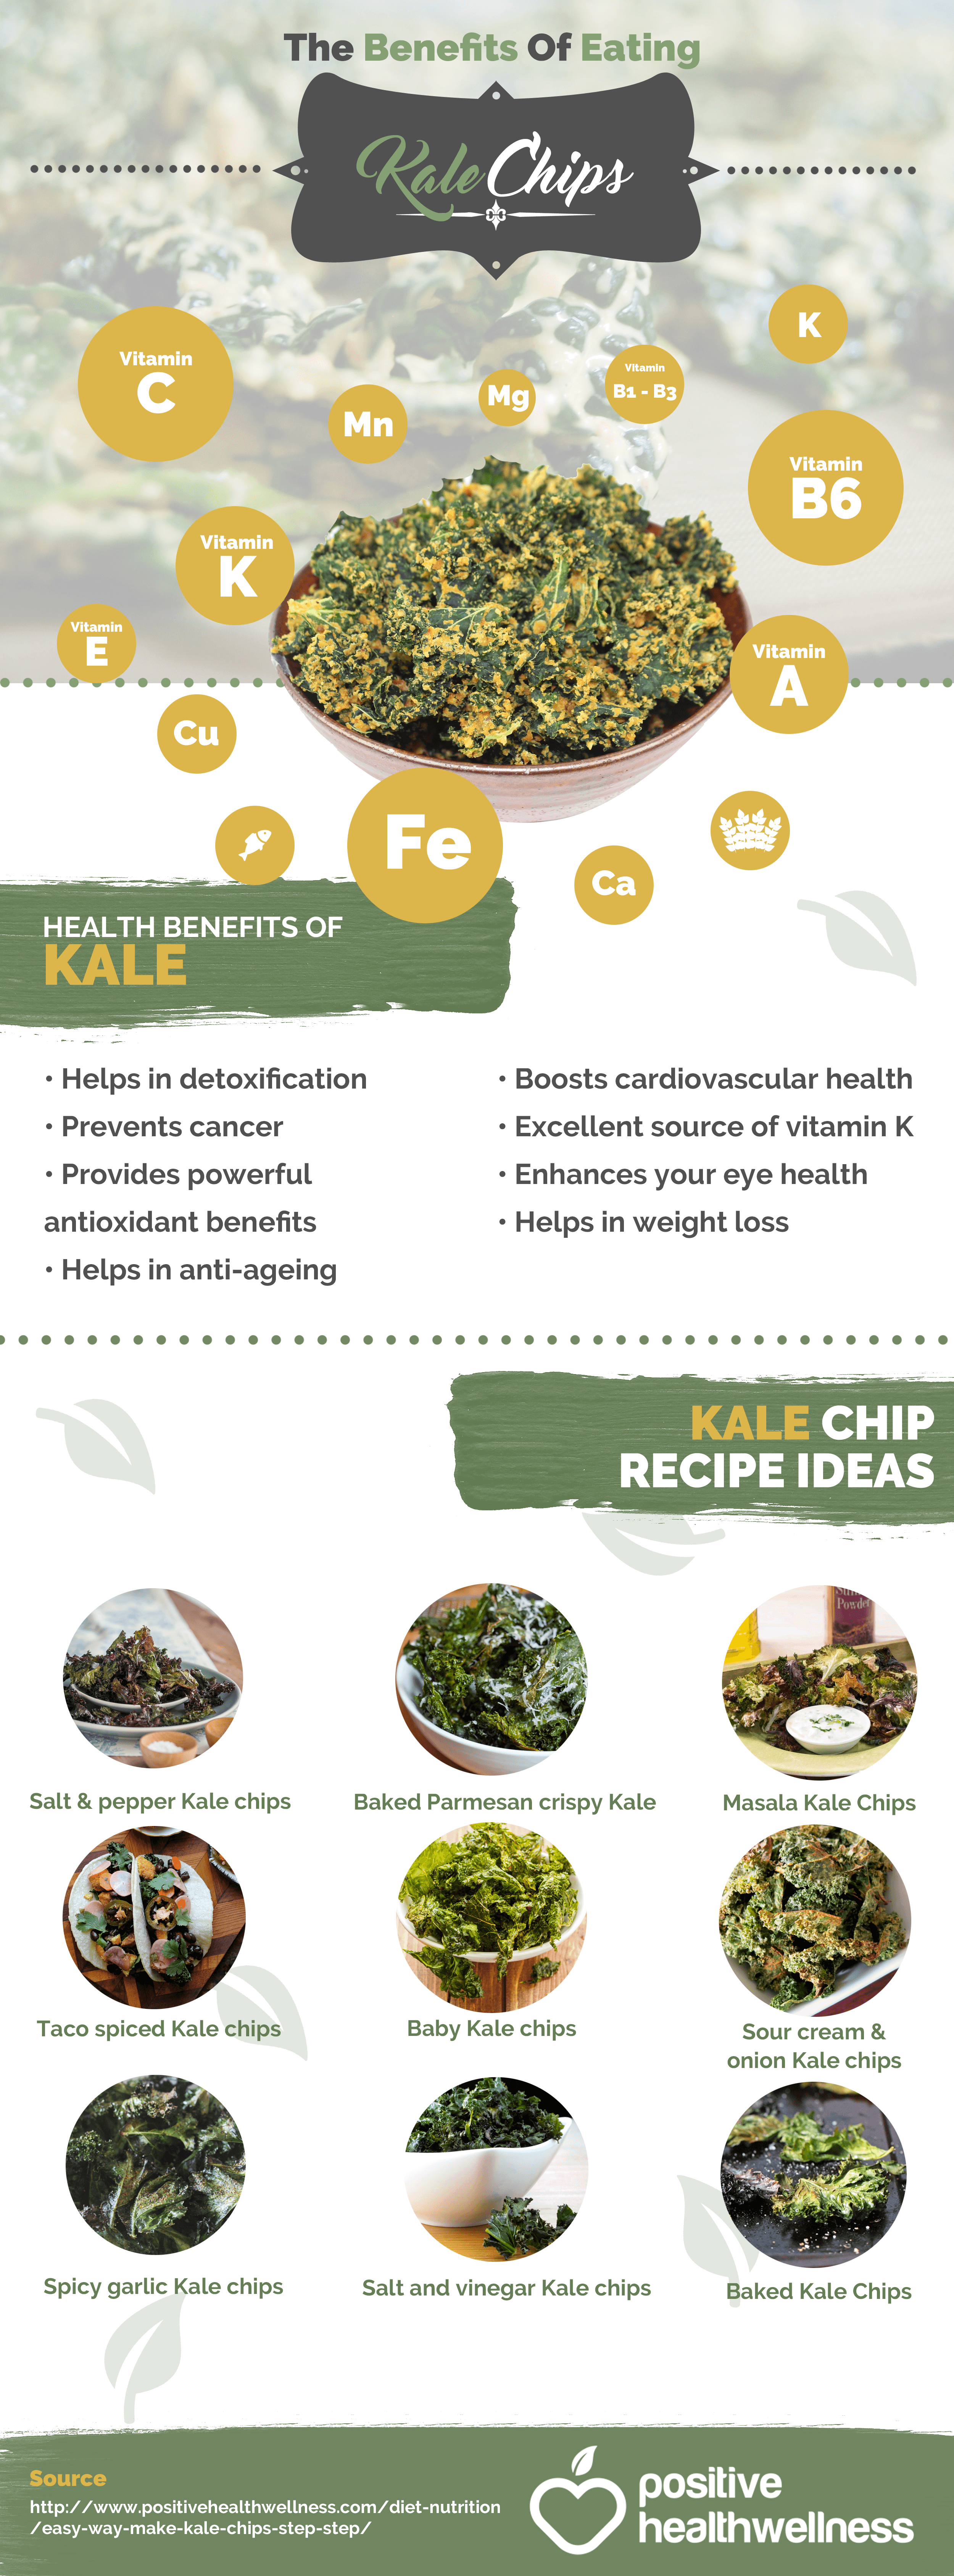 Kale Chips - All You Need To Know About Kale Chips